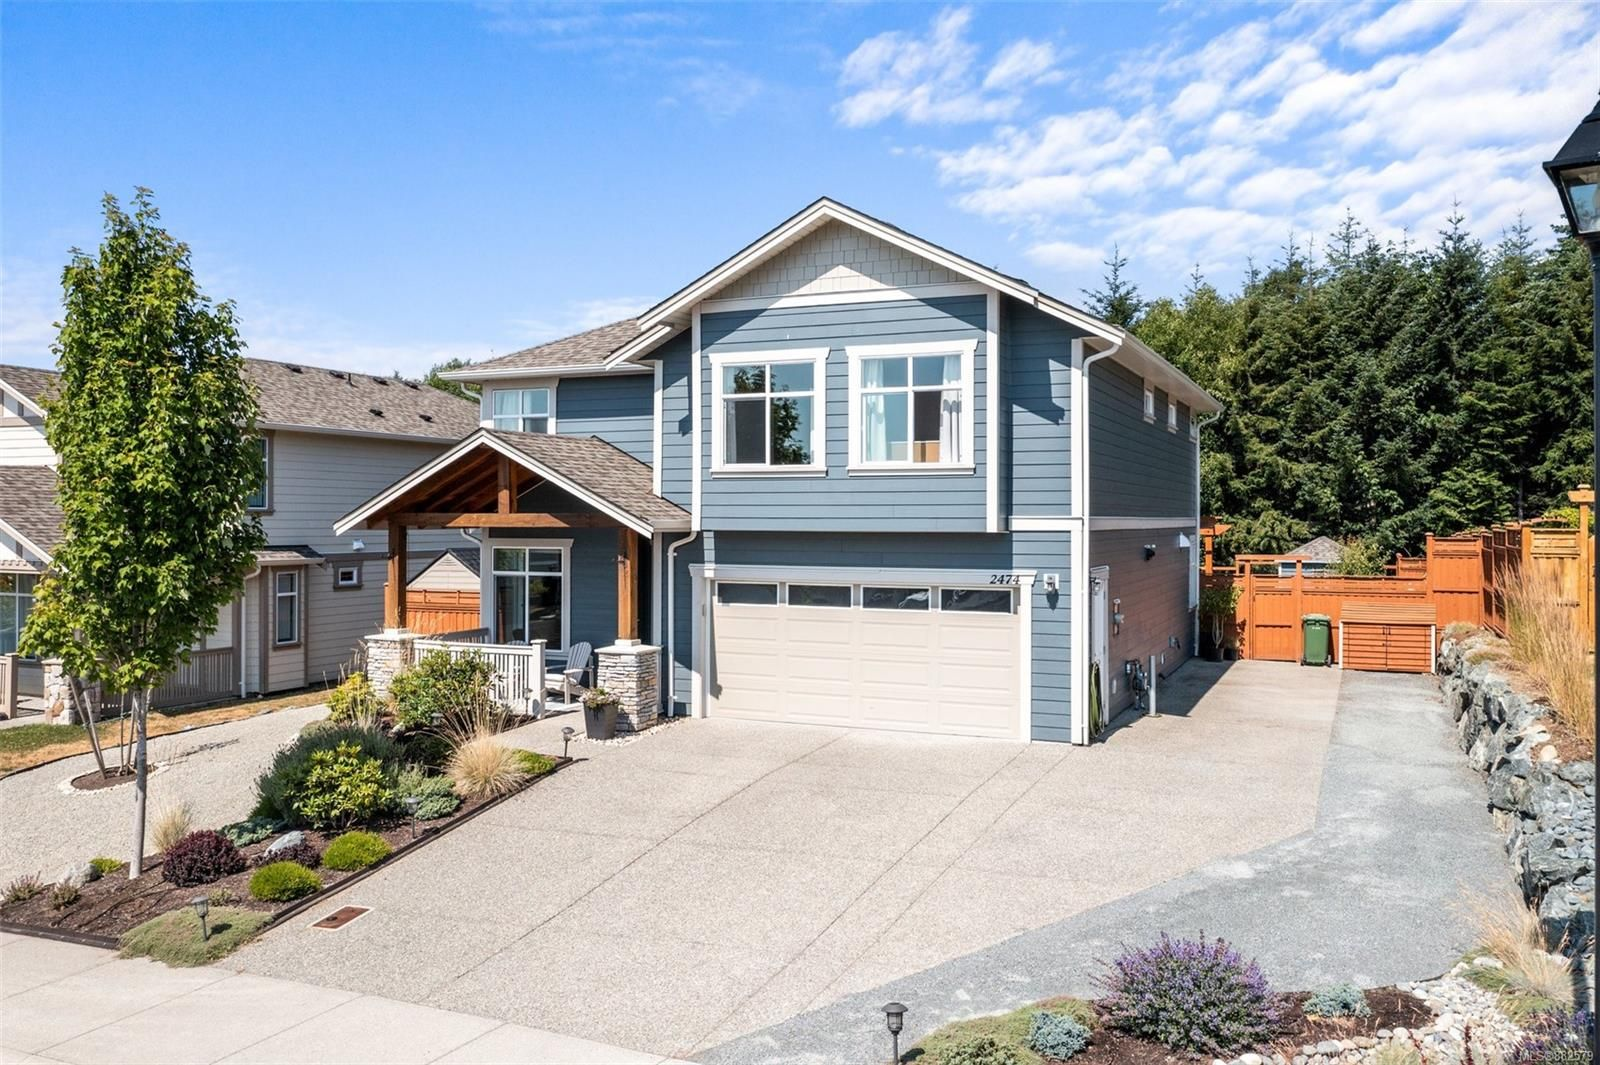 Main Photo: 2474 Anthony Pl in : Sk Sunriver House for sale (Sooke)  : MLS®# 882579